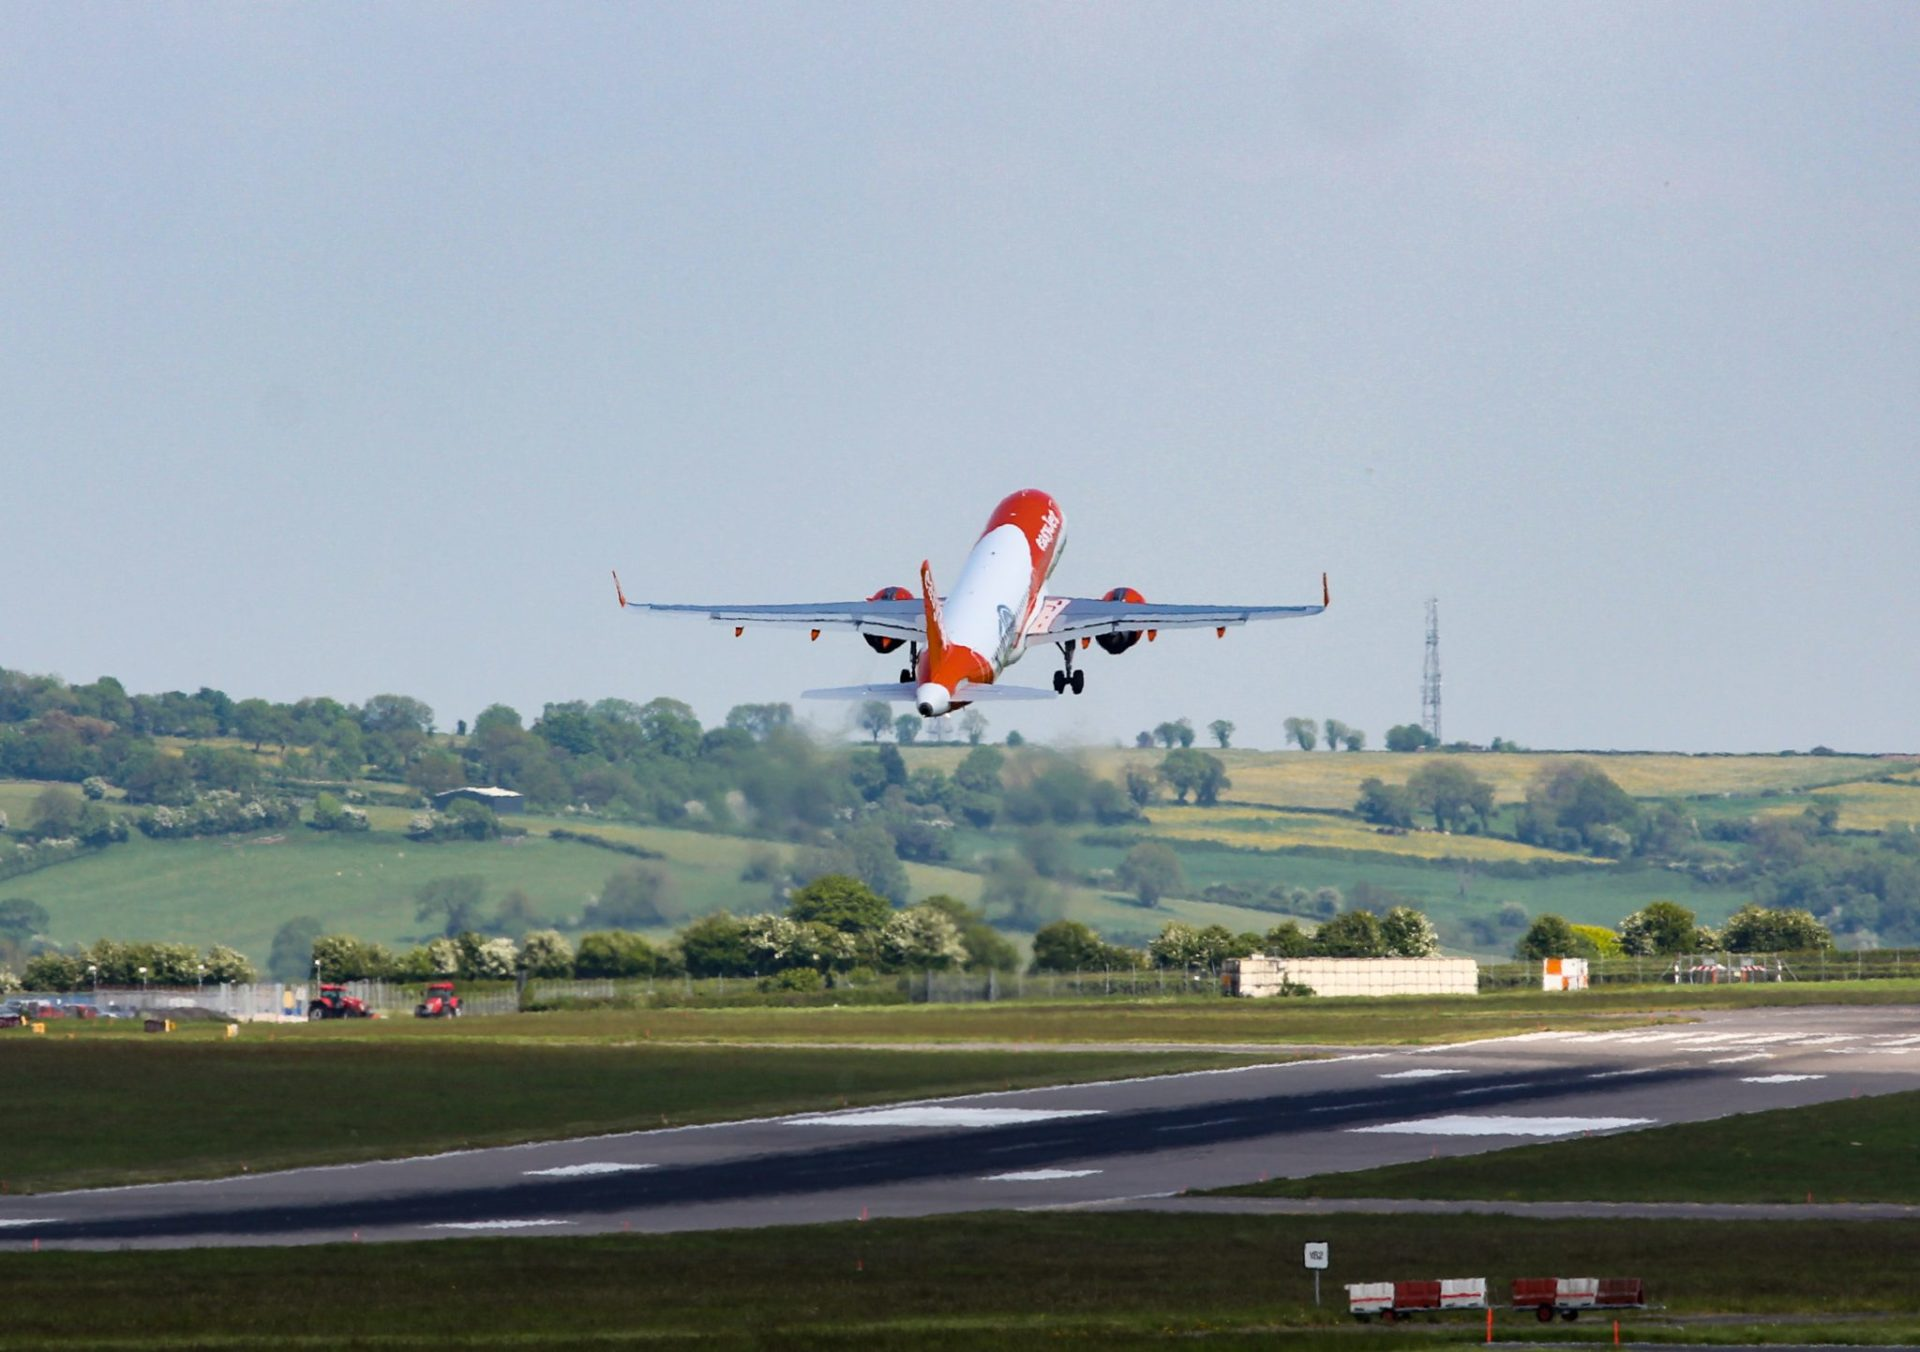 An Easyjet A320neo takes off from Bristol Airport (The Aviation Media Co.)